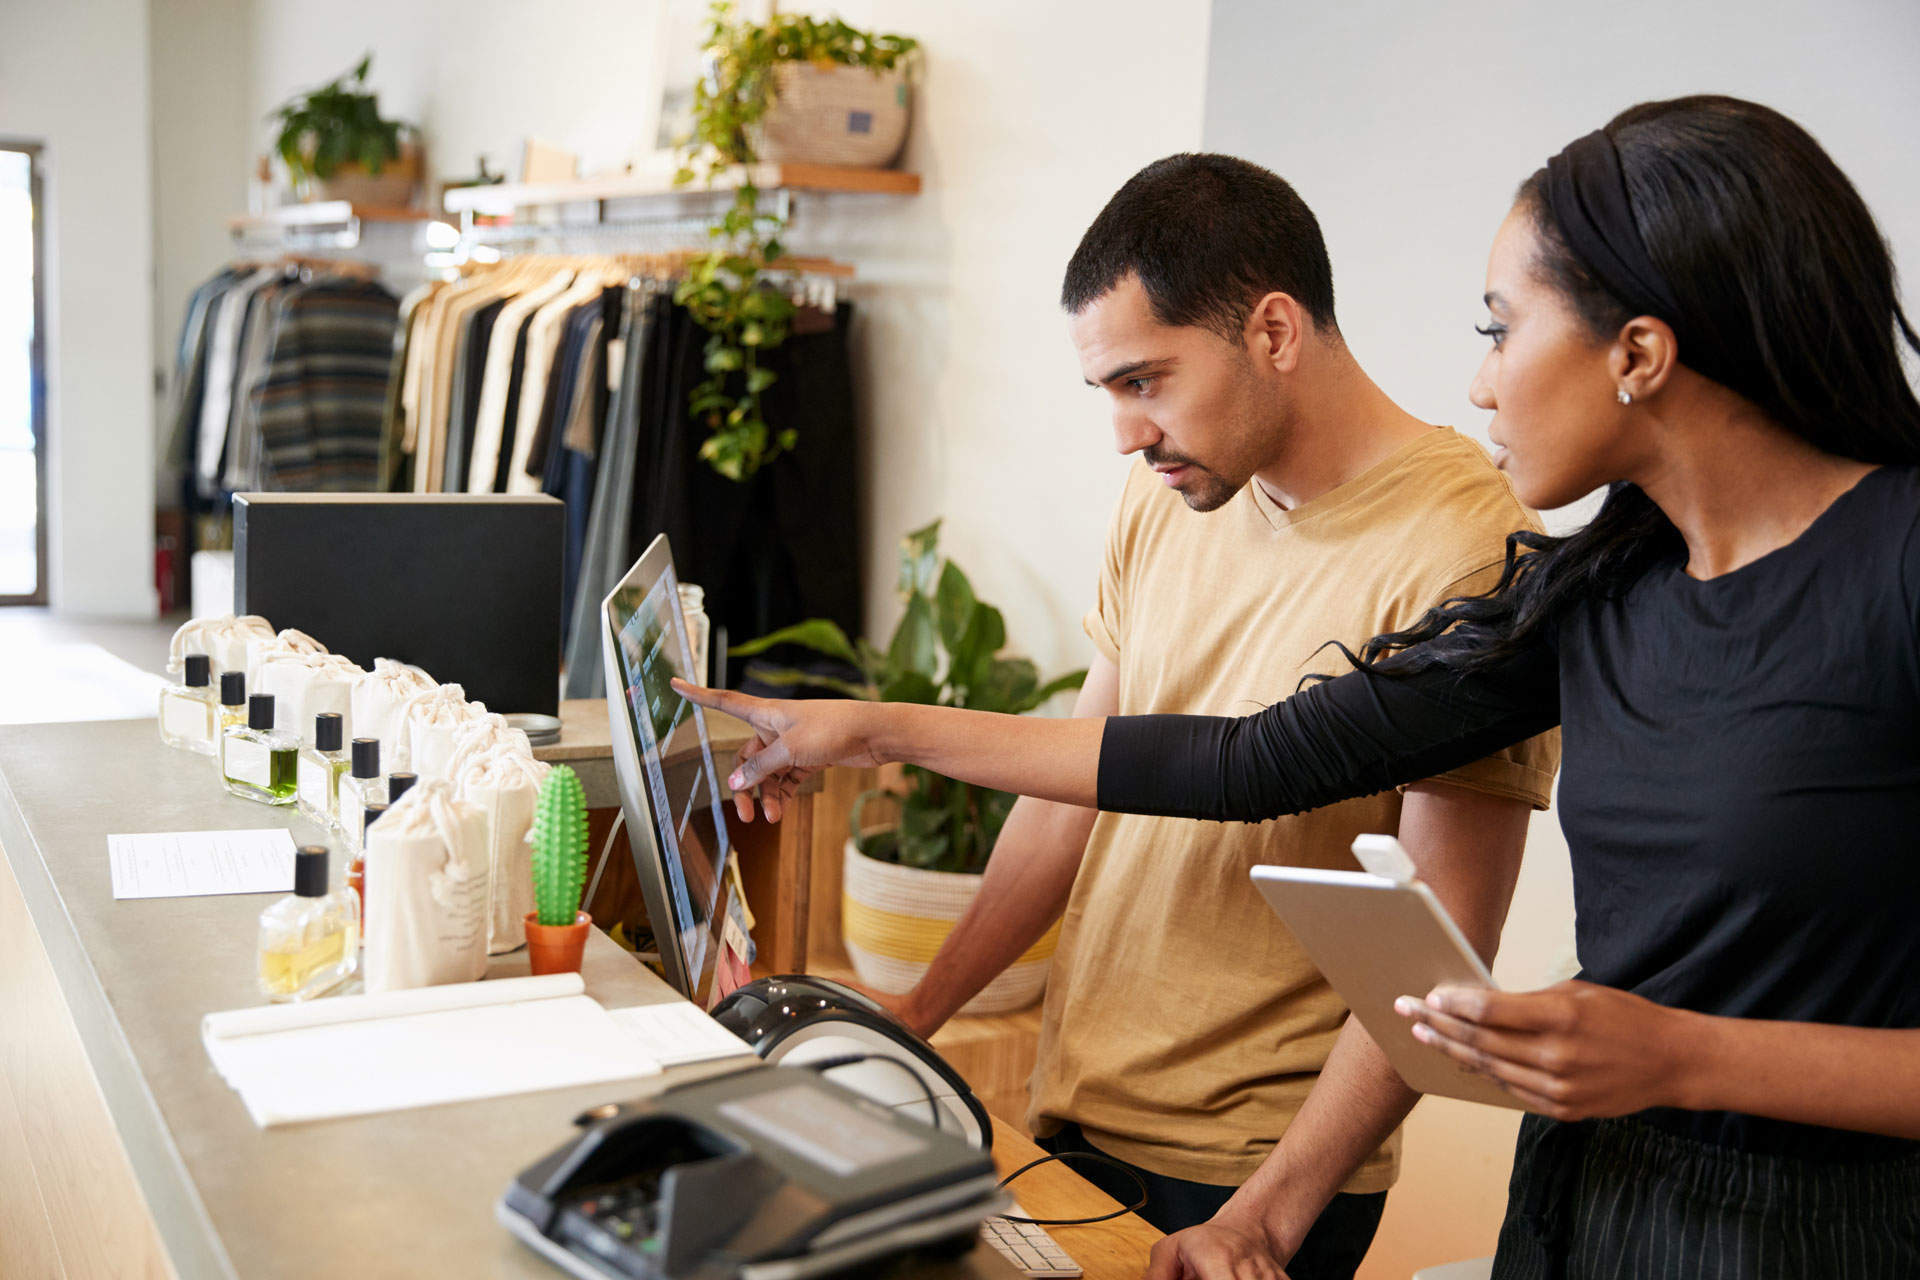 Using consumer-esque retail technology to empower employees